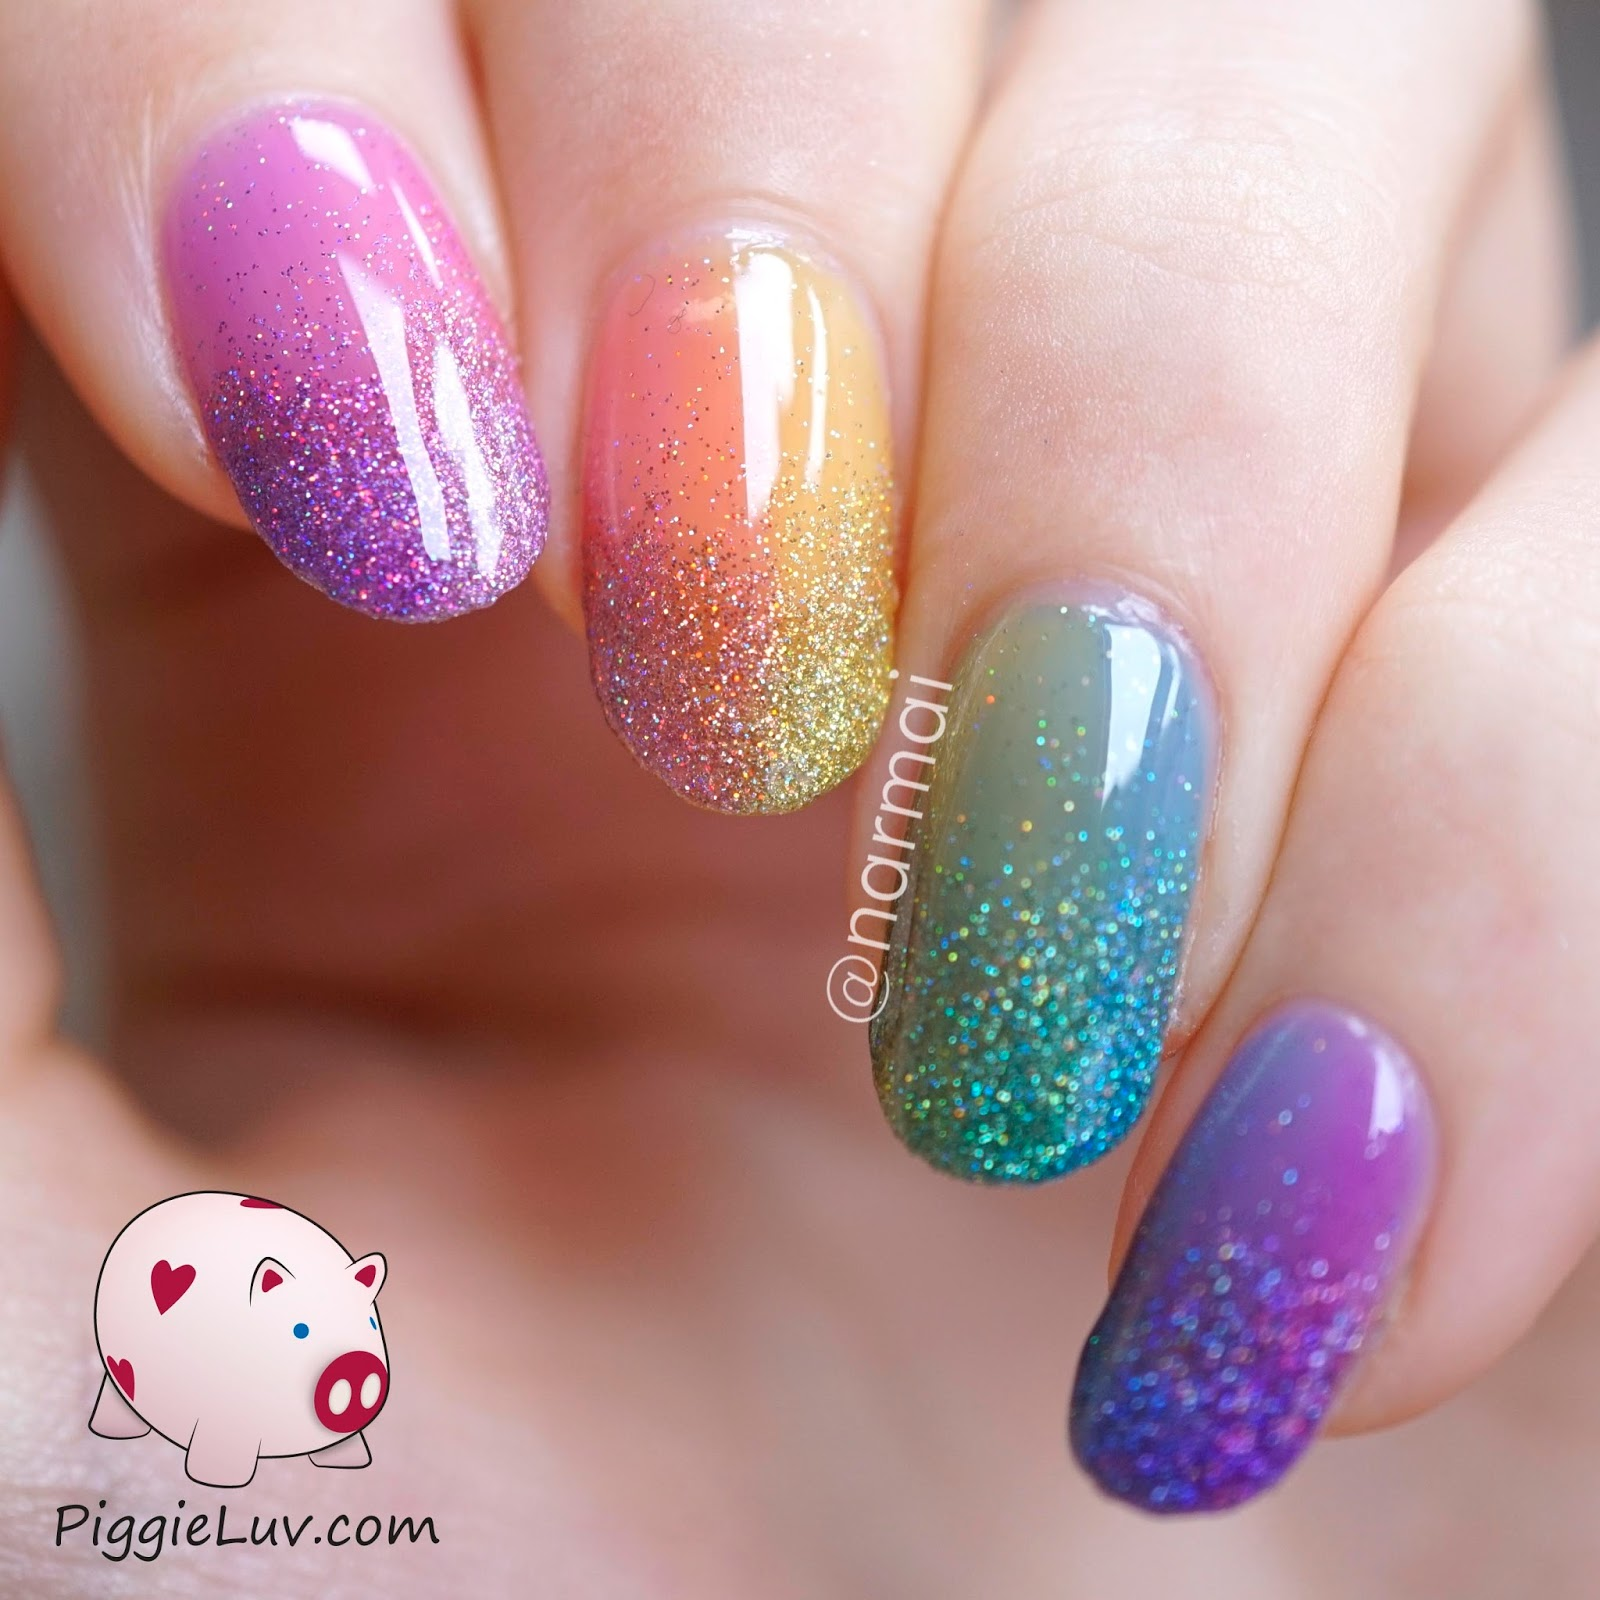 15 Sparkly Nail Designs You Have To Try | TheThings